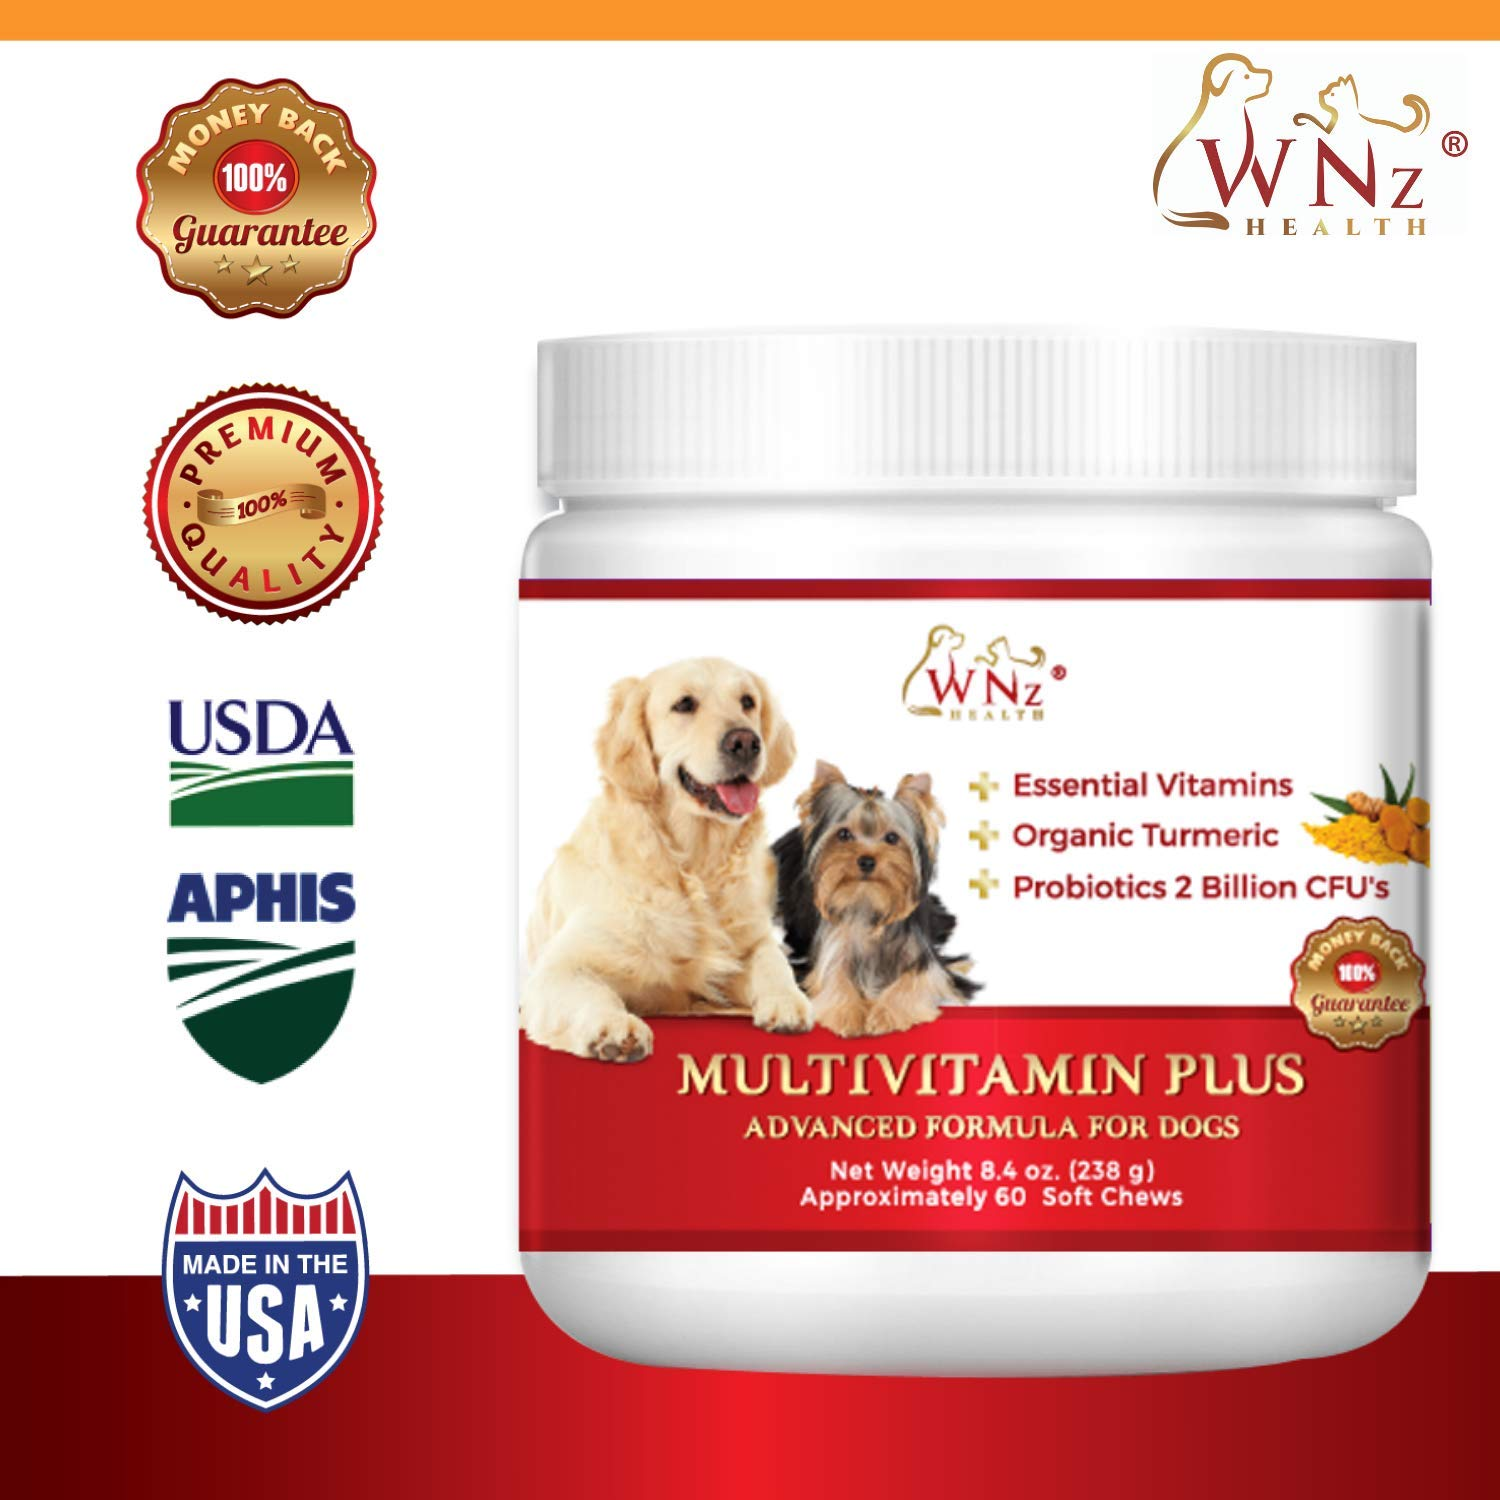 WetNozeHealth Vitamins for Dogs - Canine Multivitamin Supplement with Organic Turmeric and Probiotics for Large and Small Dogs, Chicken Flavor - 60 Soft Chews by WNz Health